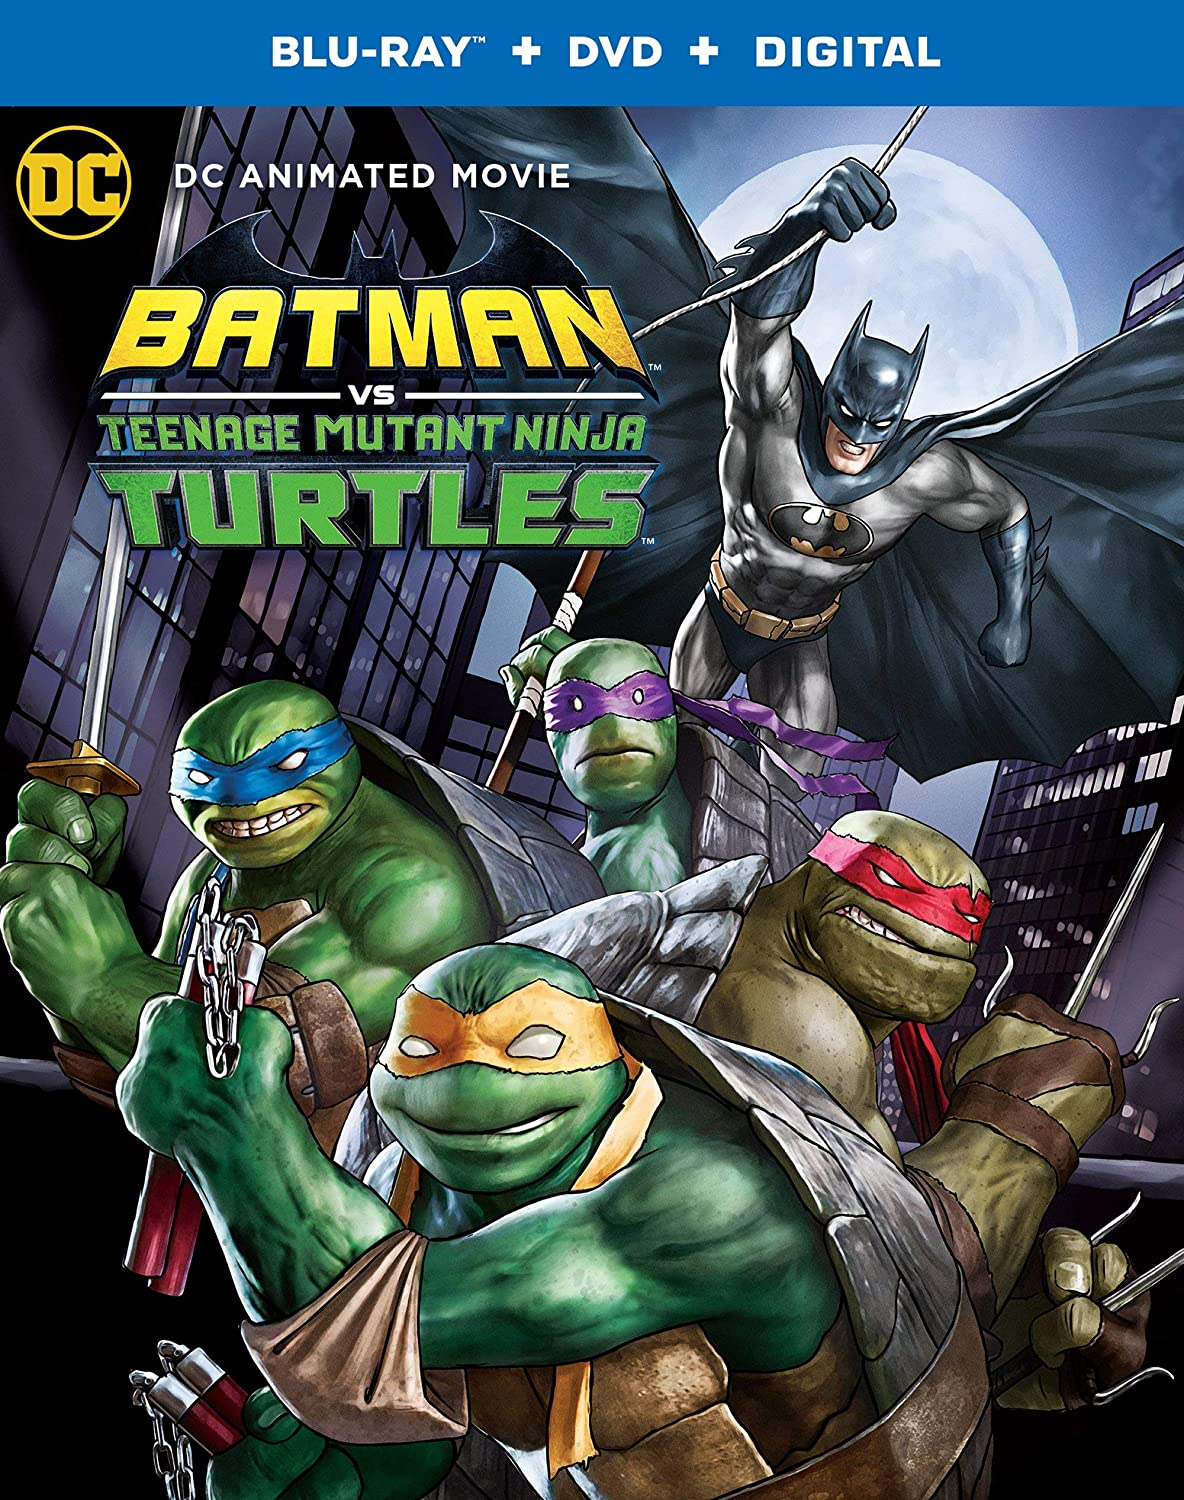 Batman Vs Teenage Mutant Ninja Turtles 2 Blu-Ray Edizione ...